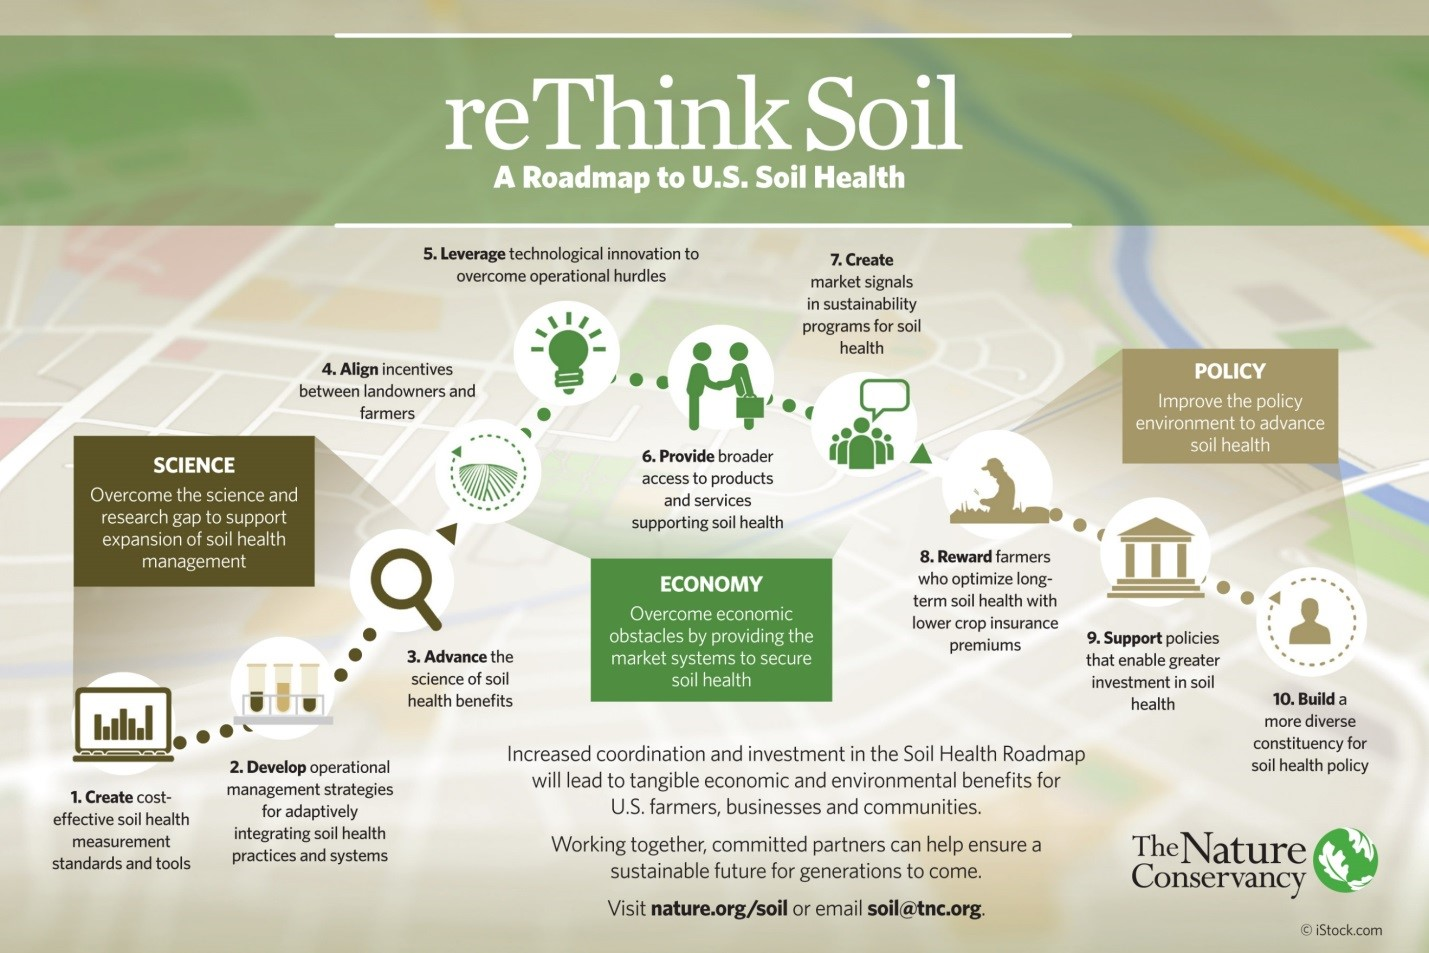 The Conservancy and its partners will work on science, economic and policy components to improve soil health in the US. Credit: The Nature Conservancy